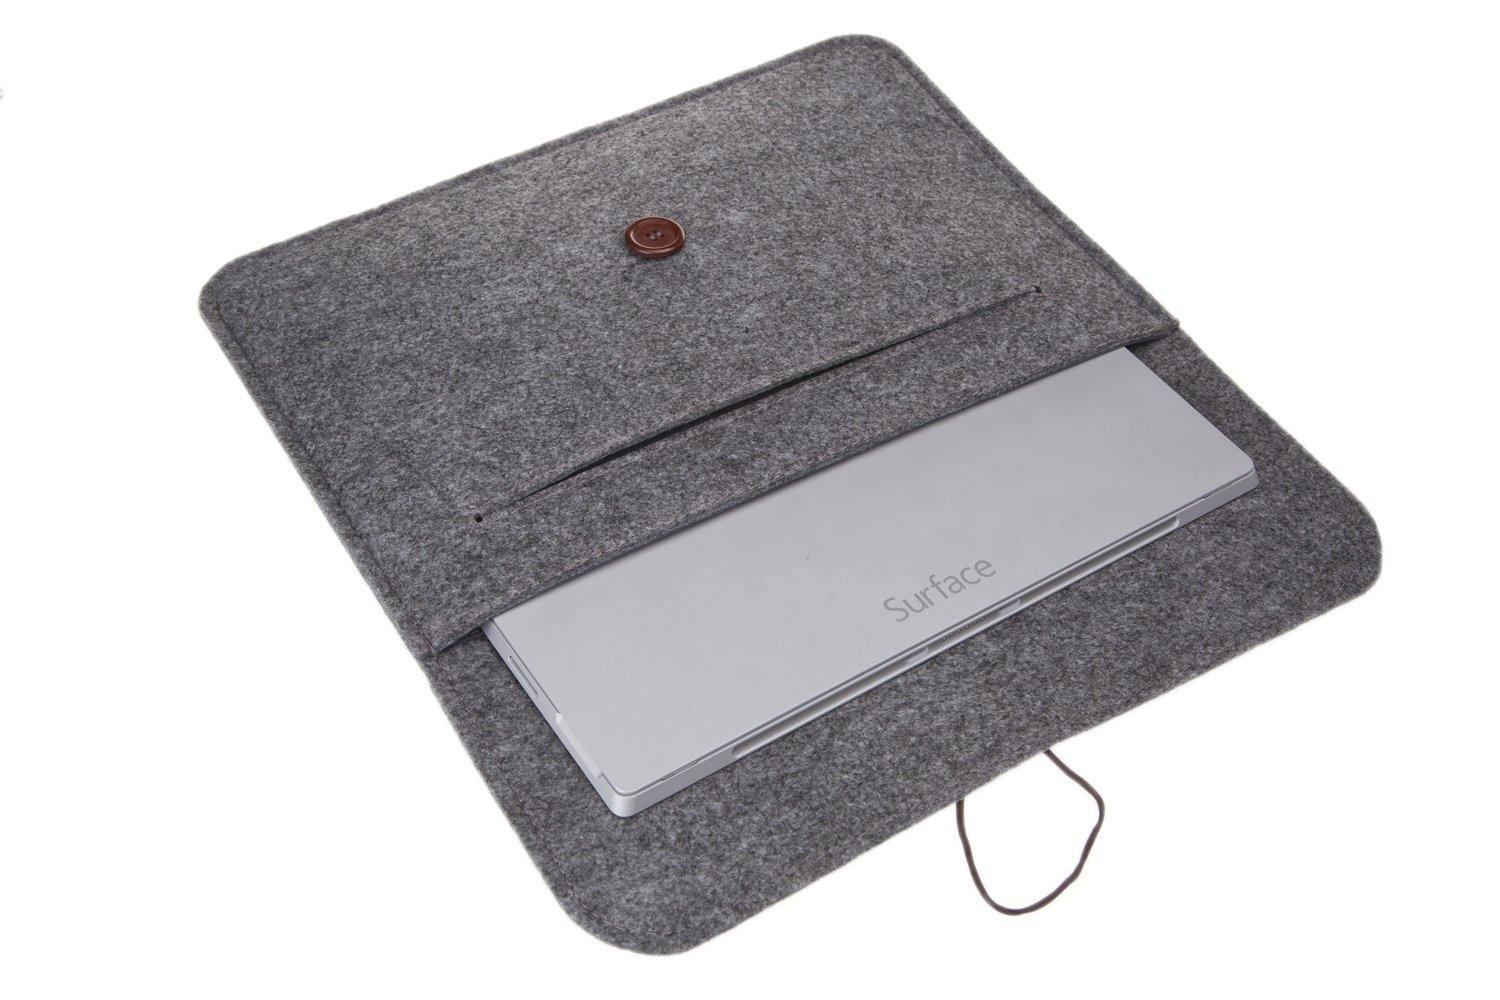 fashion wool felt sleeve carrying case pouch bag for